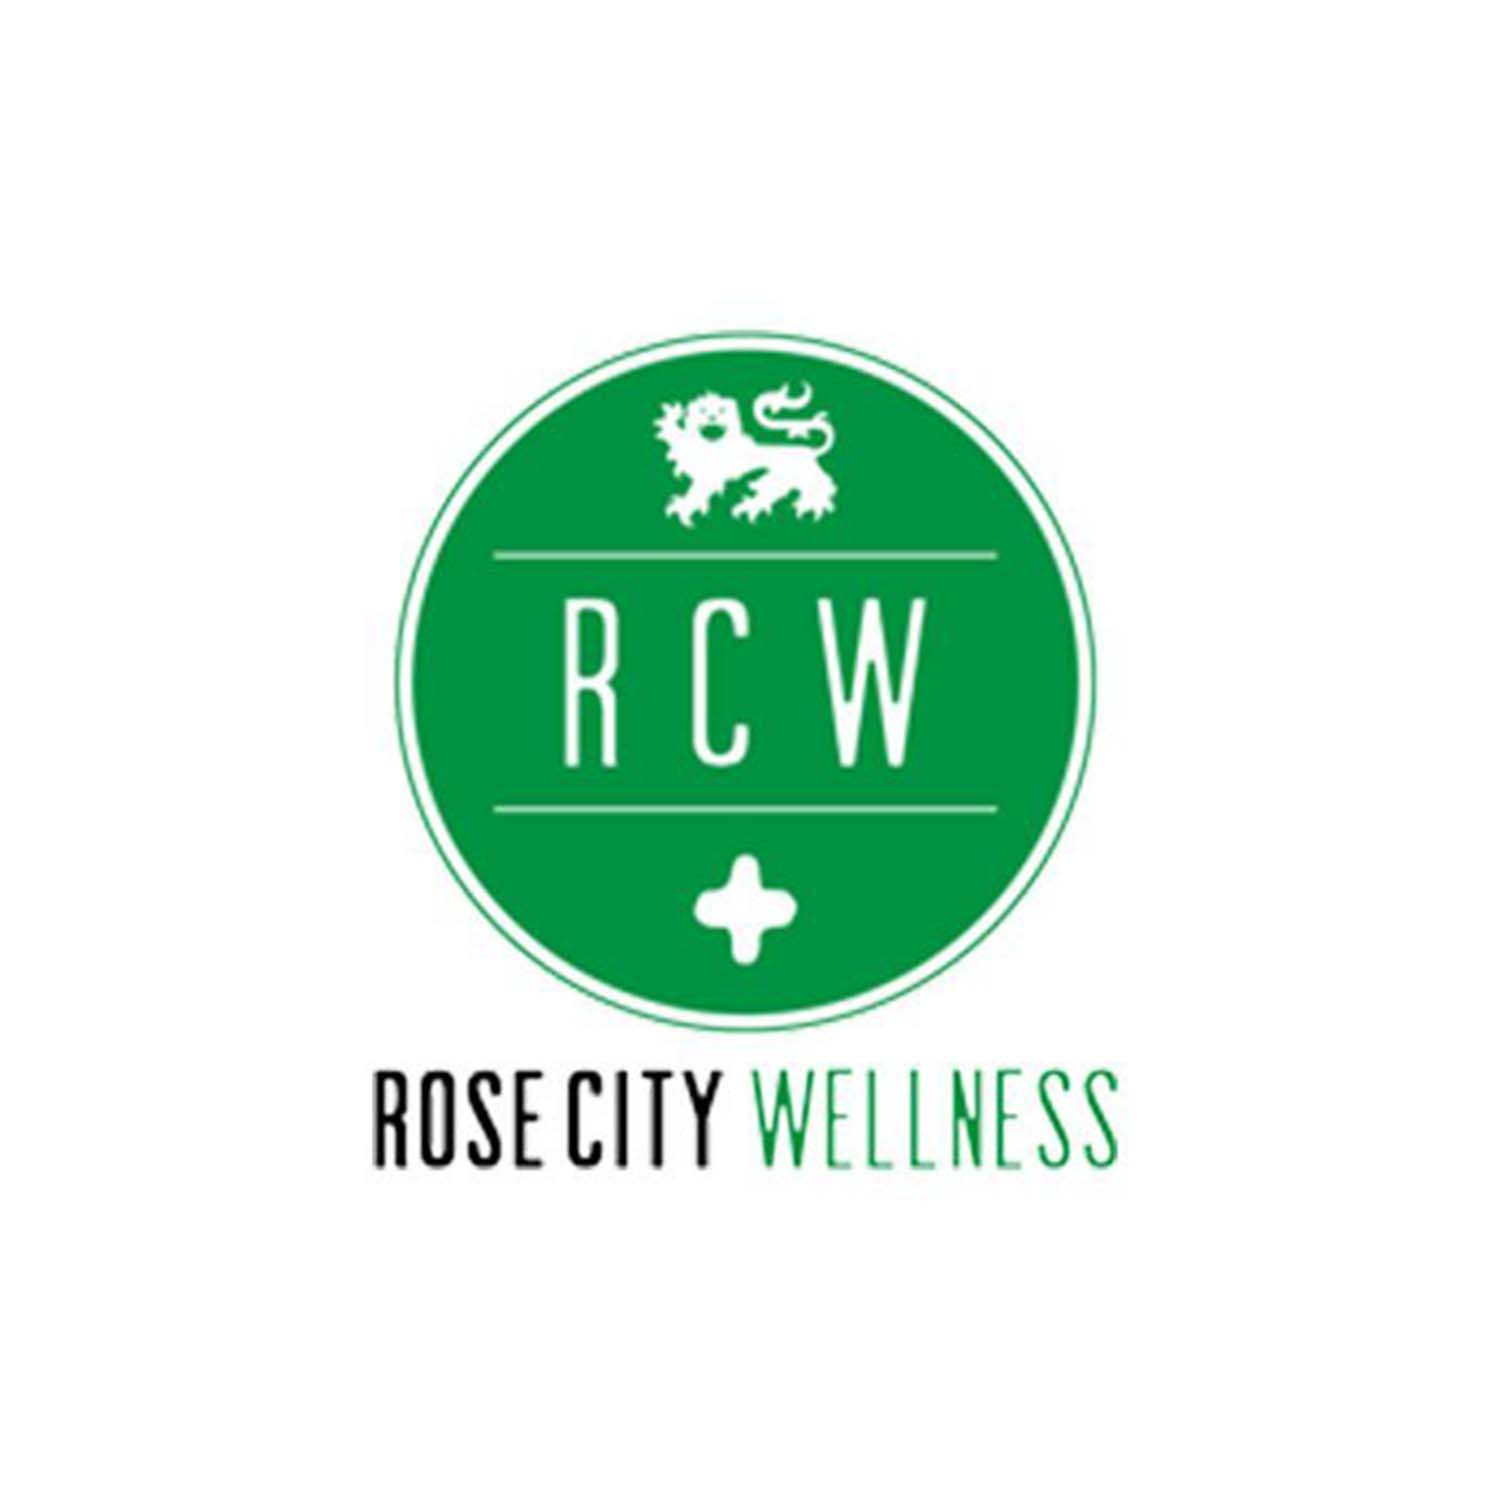 Rose City Wellness - 3919, 214 NW Couch St, Portland, OR 97209